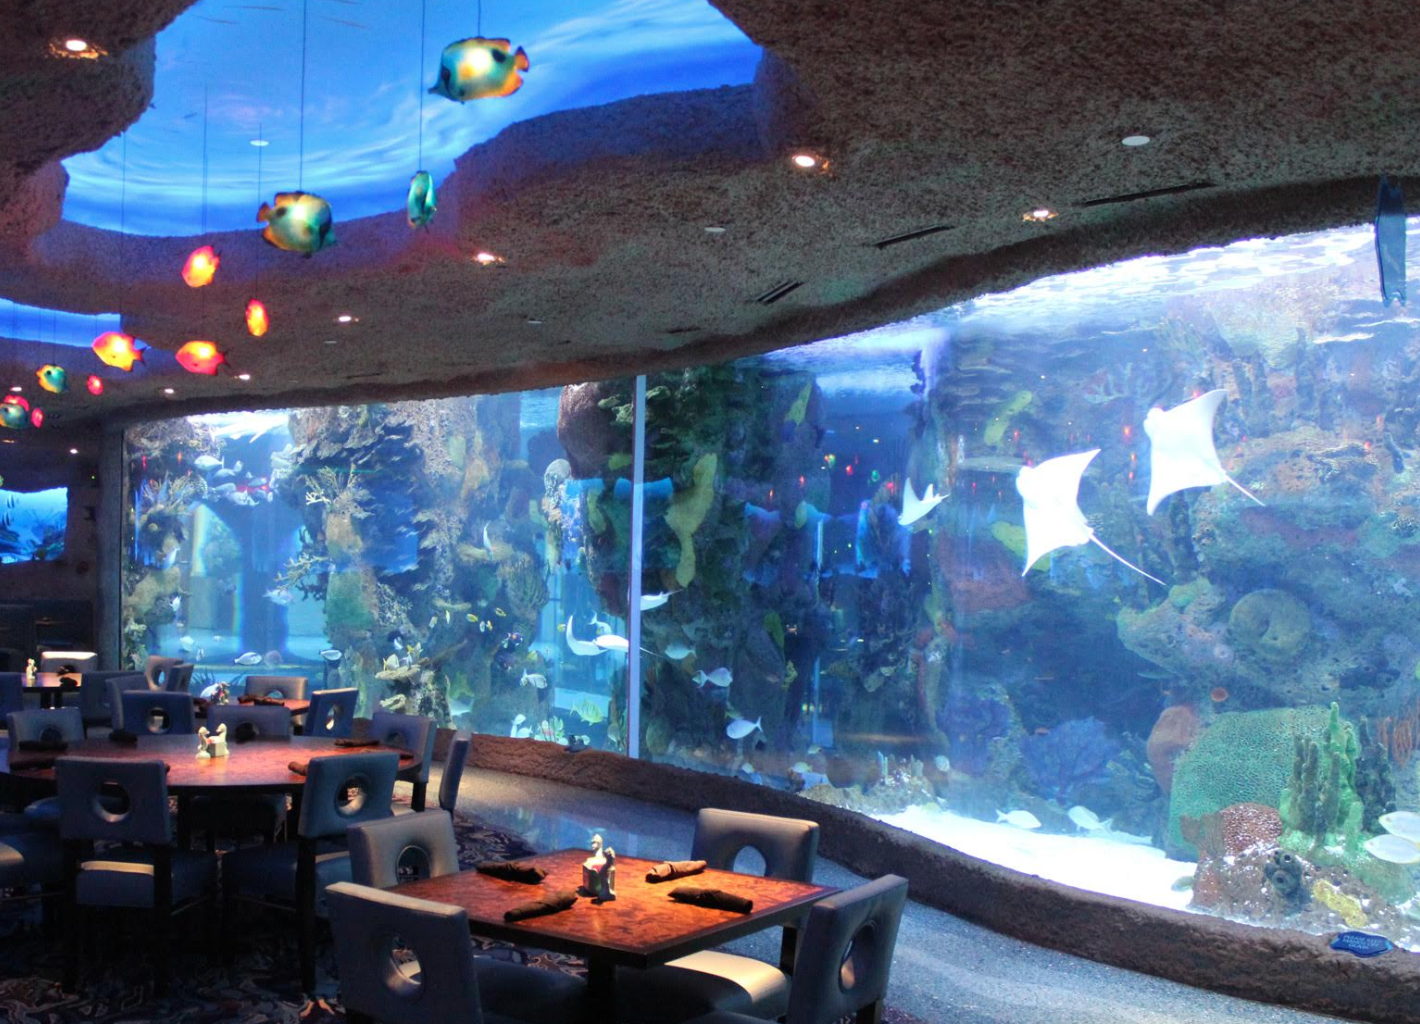 Aquarium Restaurant in Nashville